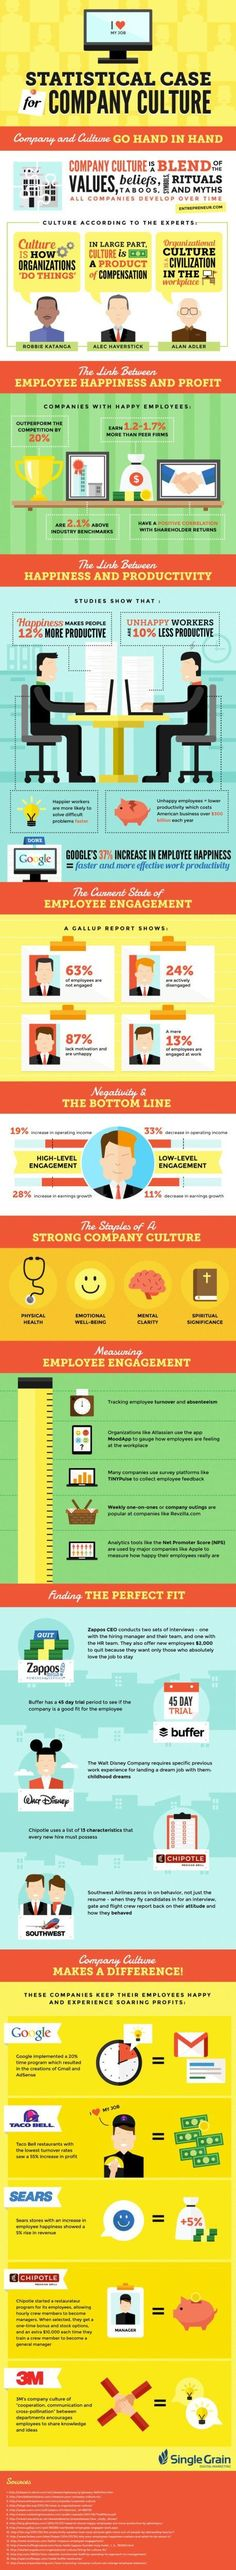 Organisational culture infographic. Facts and figures as found in saatkorn.